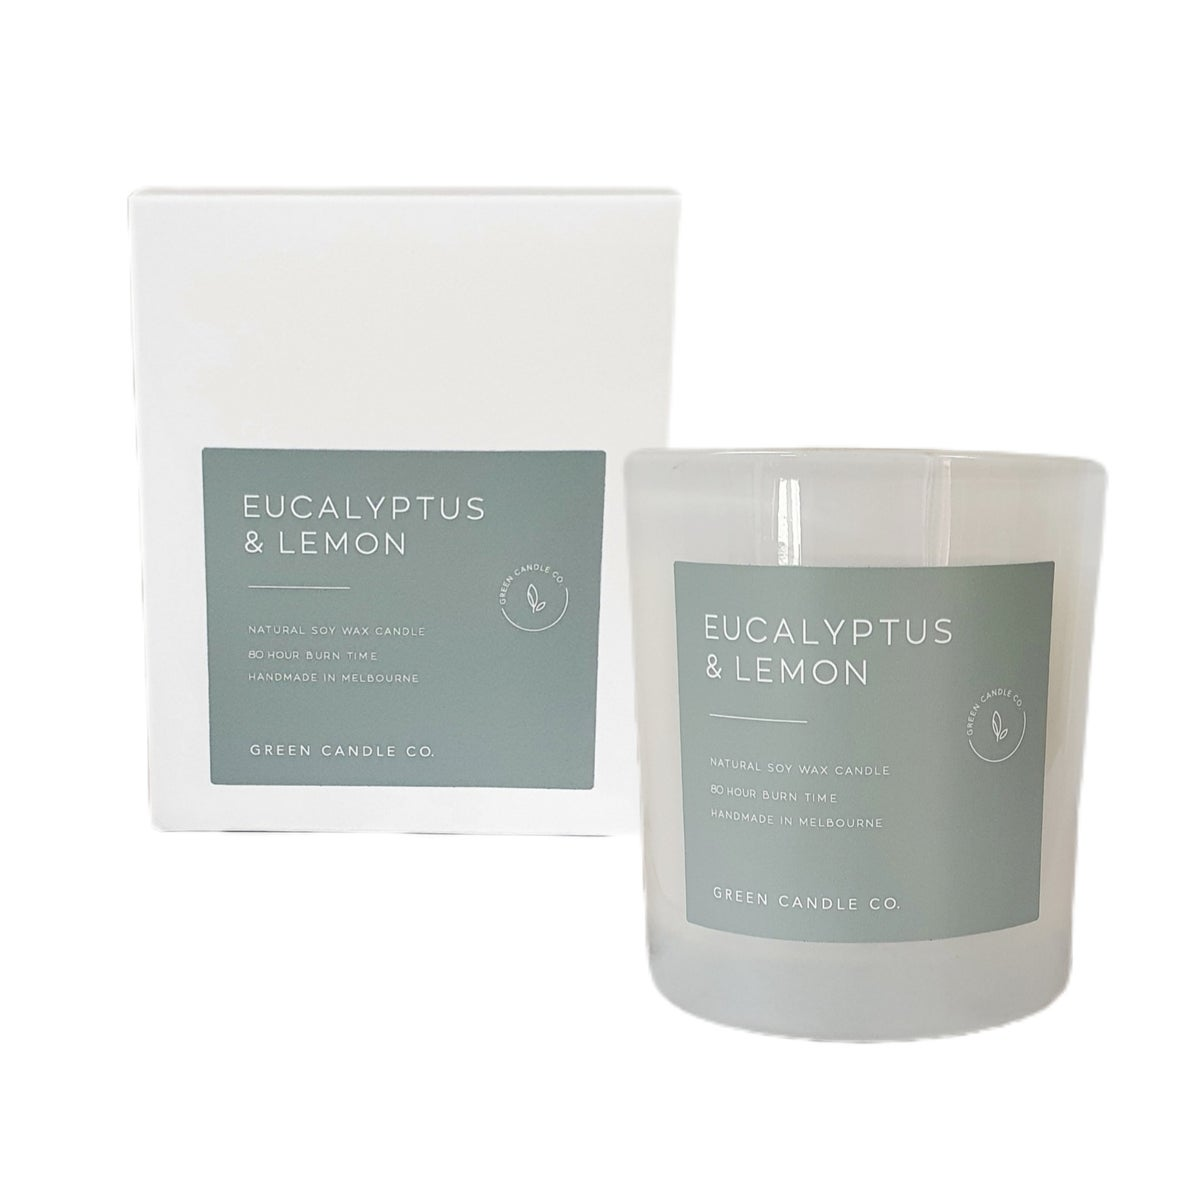 Image of EUCALYPTUS & LEMON Candle / Large